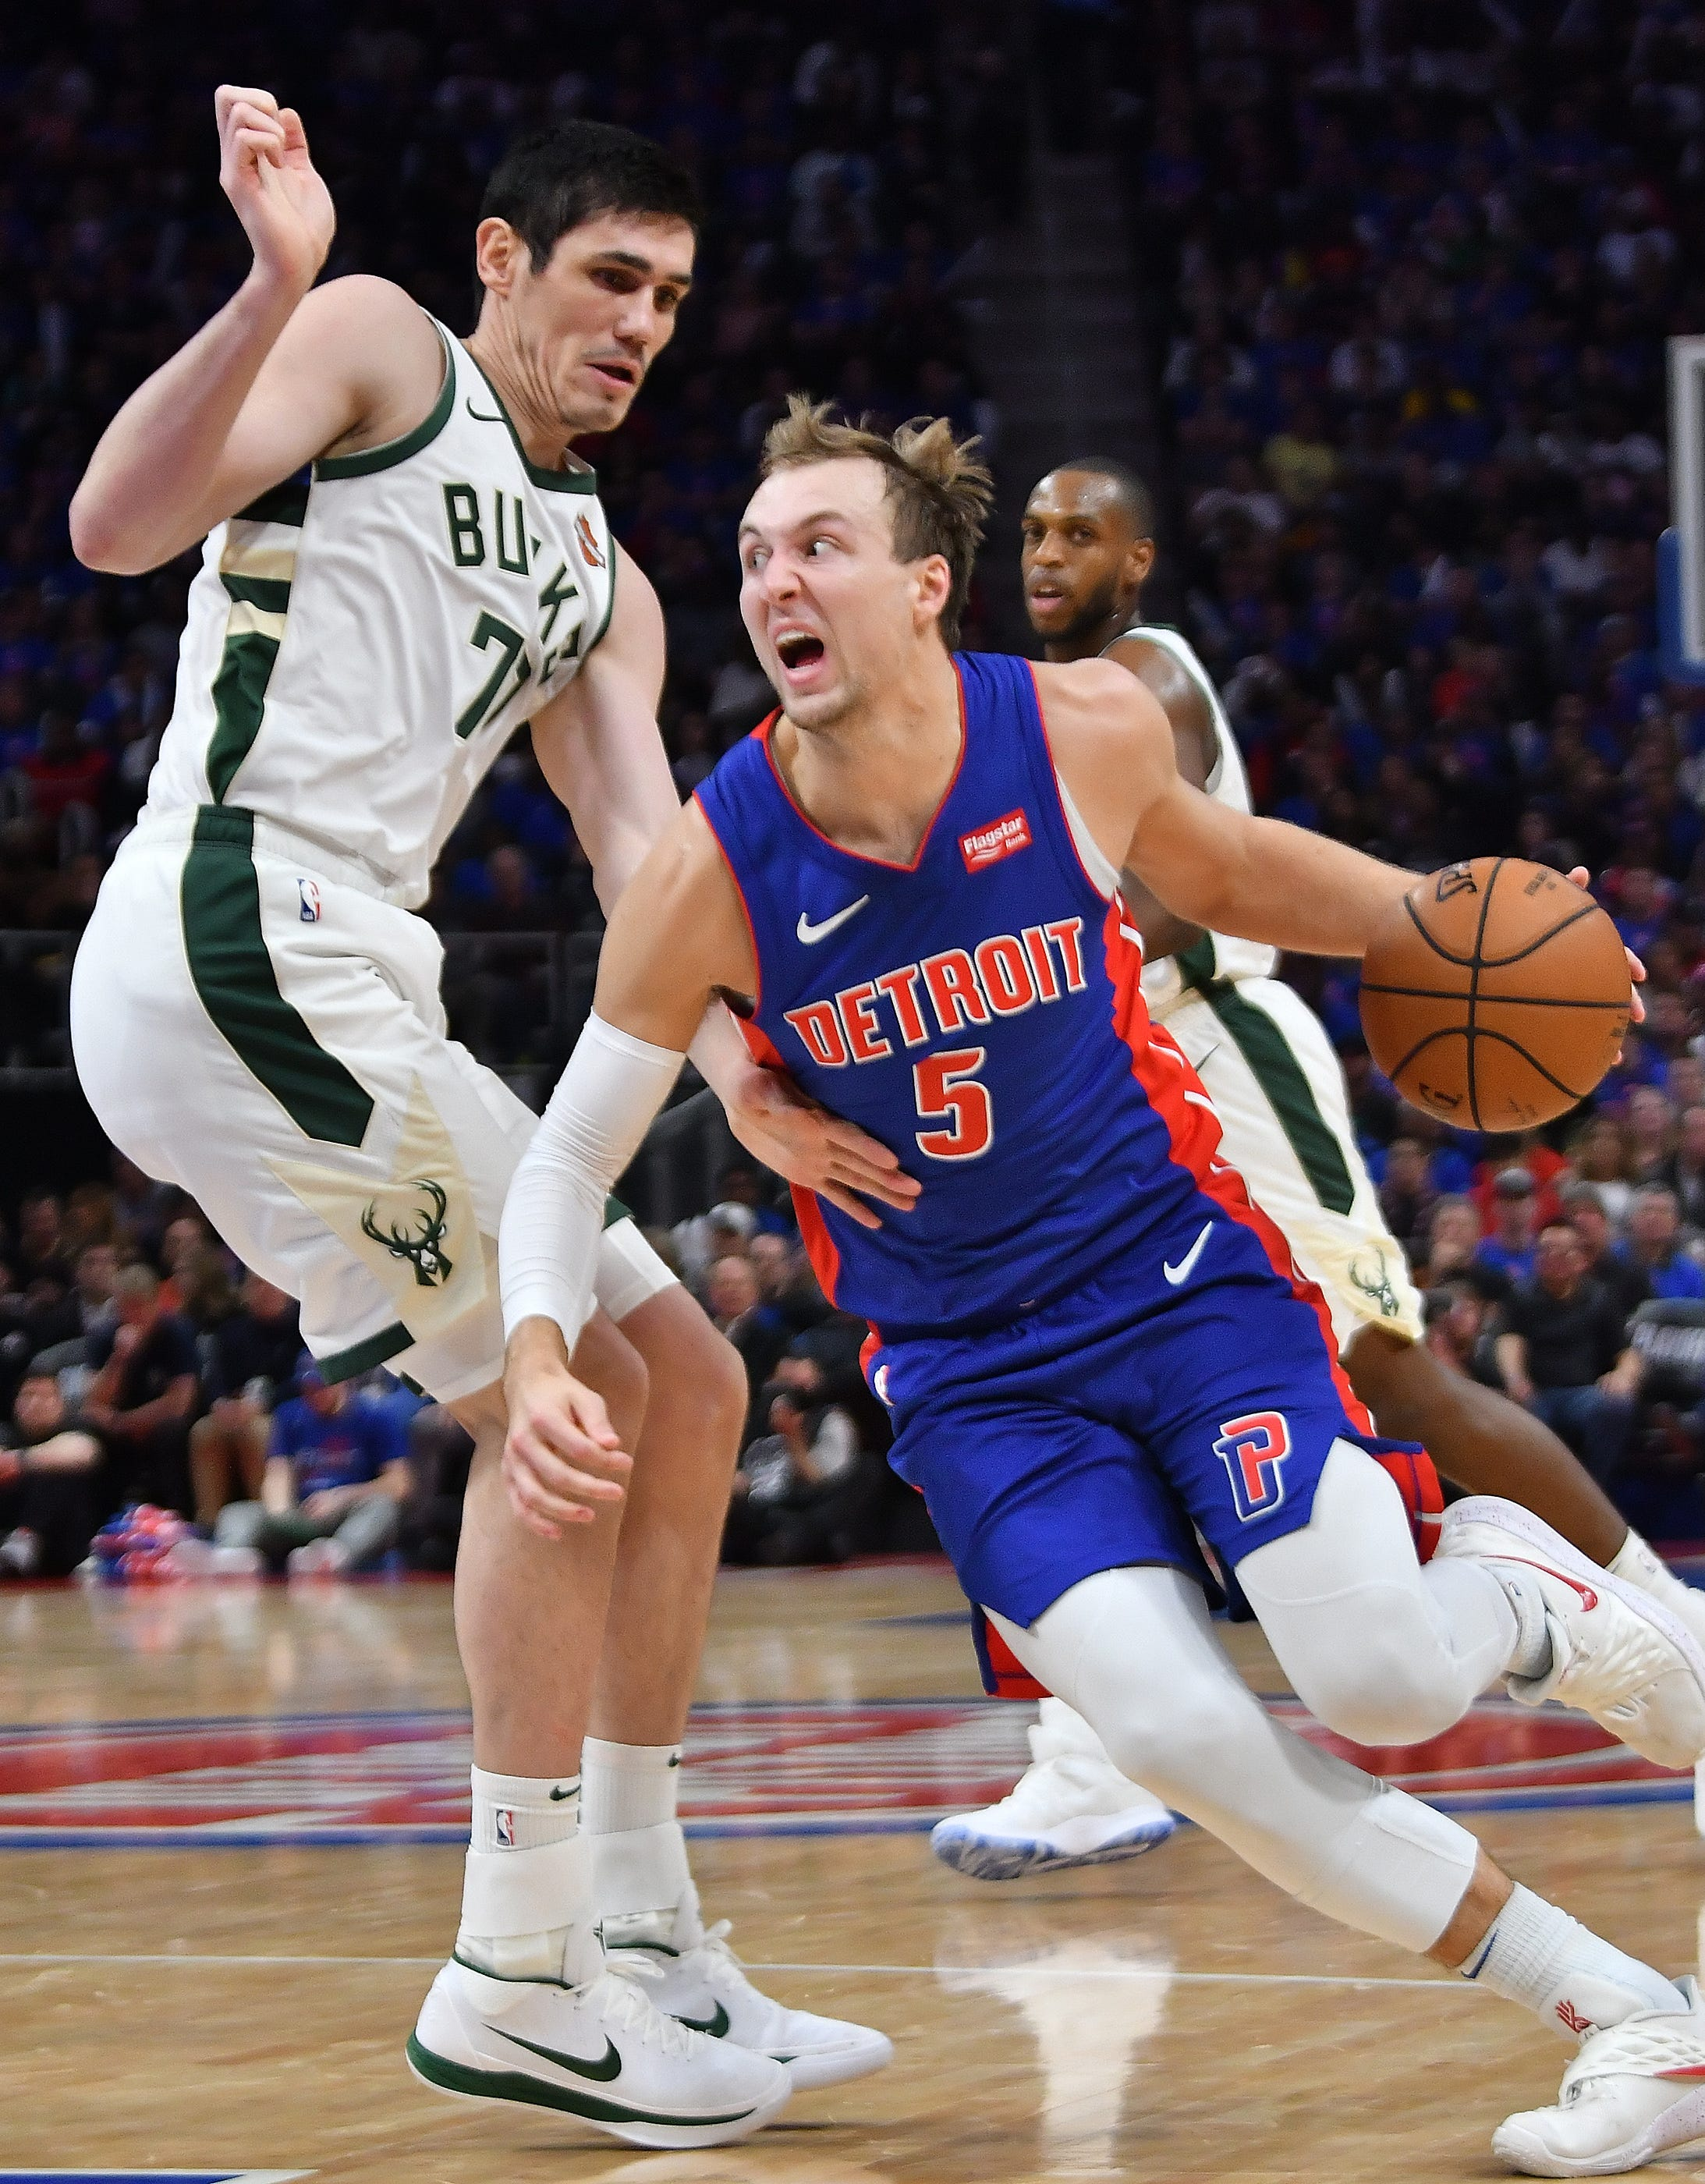 Pistons guard Luke Kennard is averaging 16.3 points and shooting 50 percent from the floor through three playoff games.